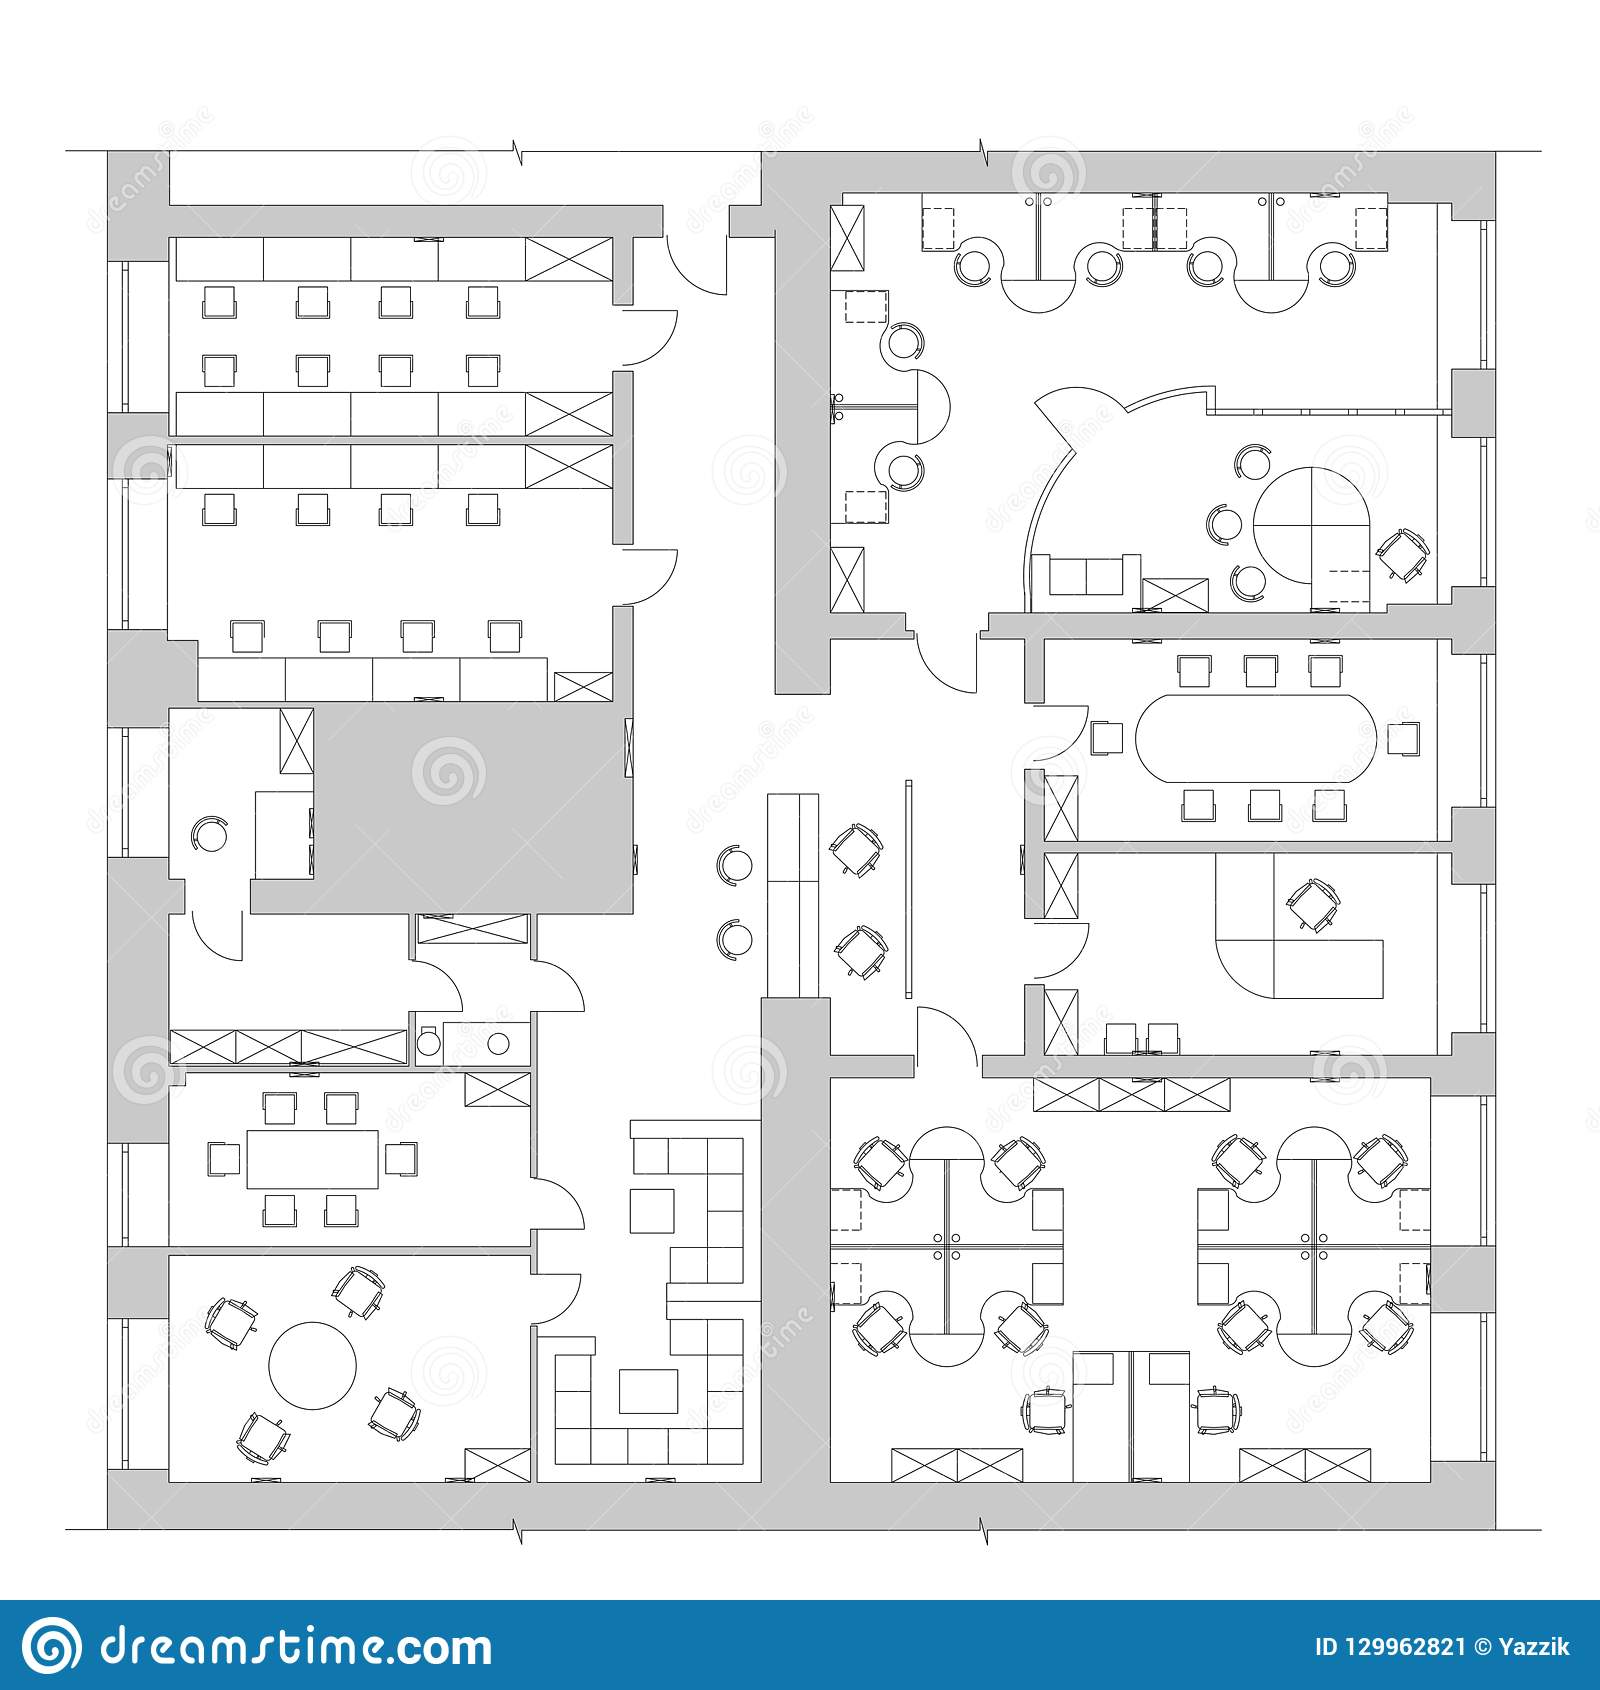 Standard Office Furniture Symbols On Floor Plans Stock ... on floor plans garage, floor plan for transportation company, electrical plan for warehouse, building plans for warehouse, floor plans retail,